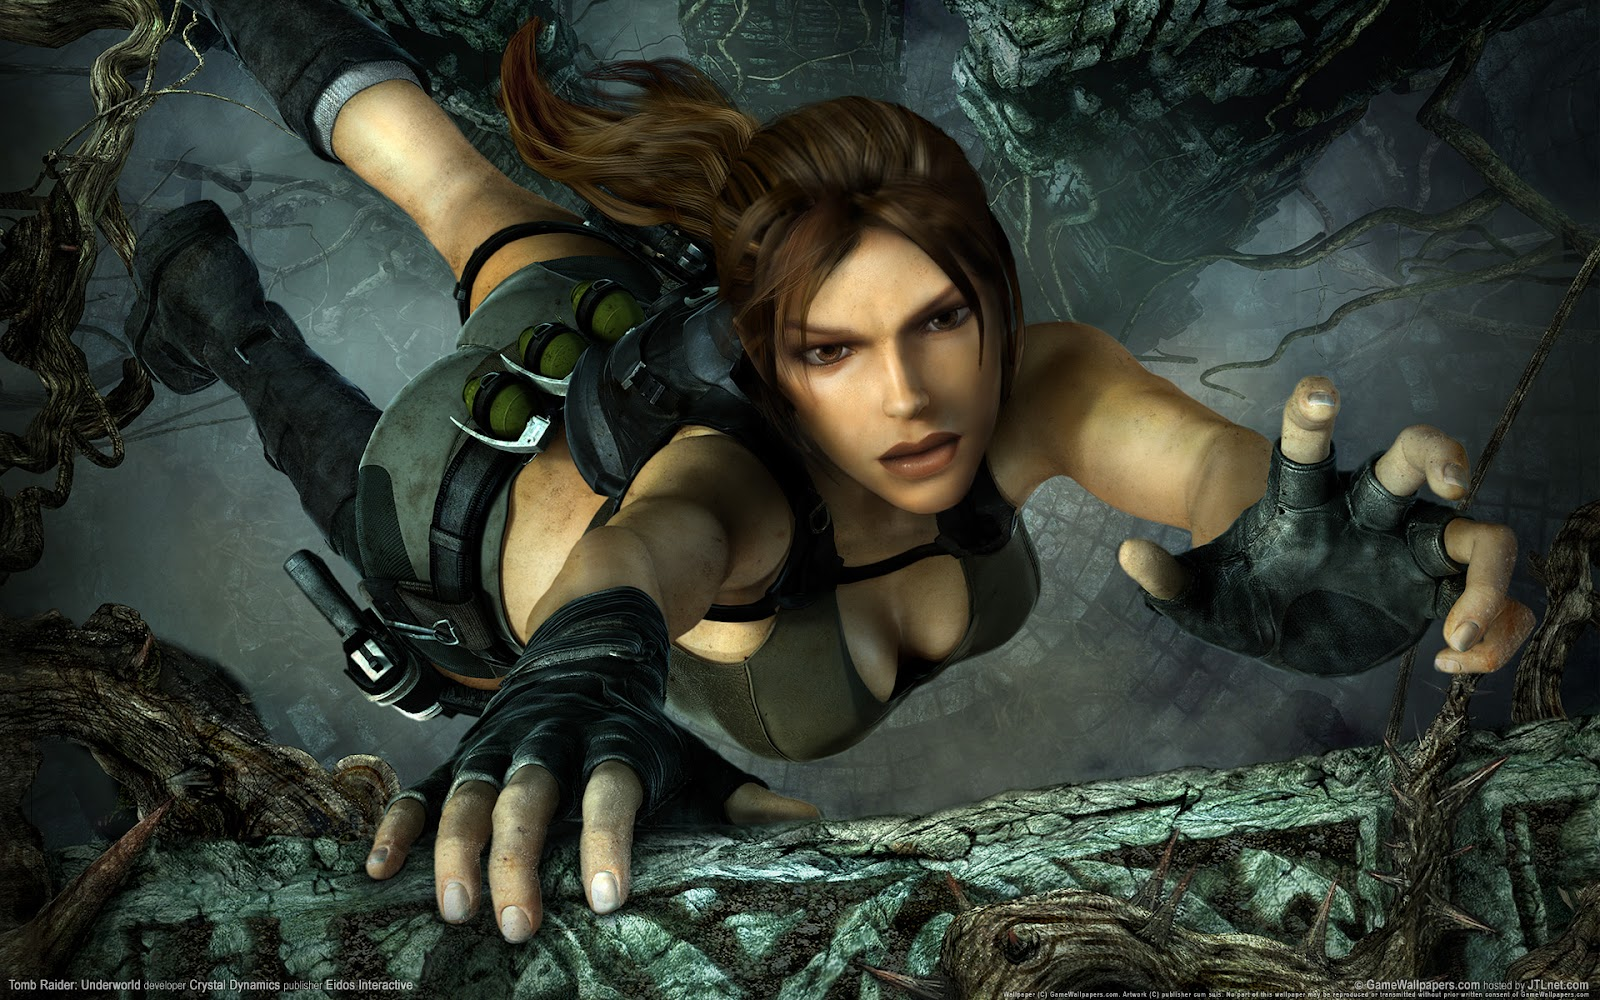 Tomb Raider Underworld HD desktop wallpaper  - tomb raider underworld game widescreen wallpapers